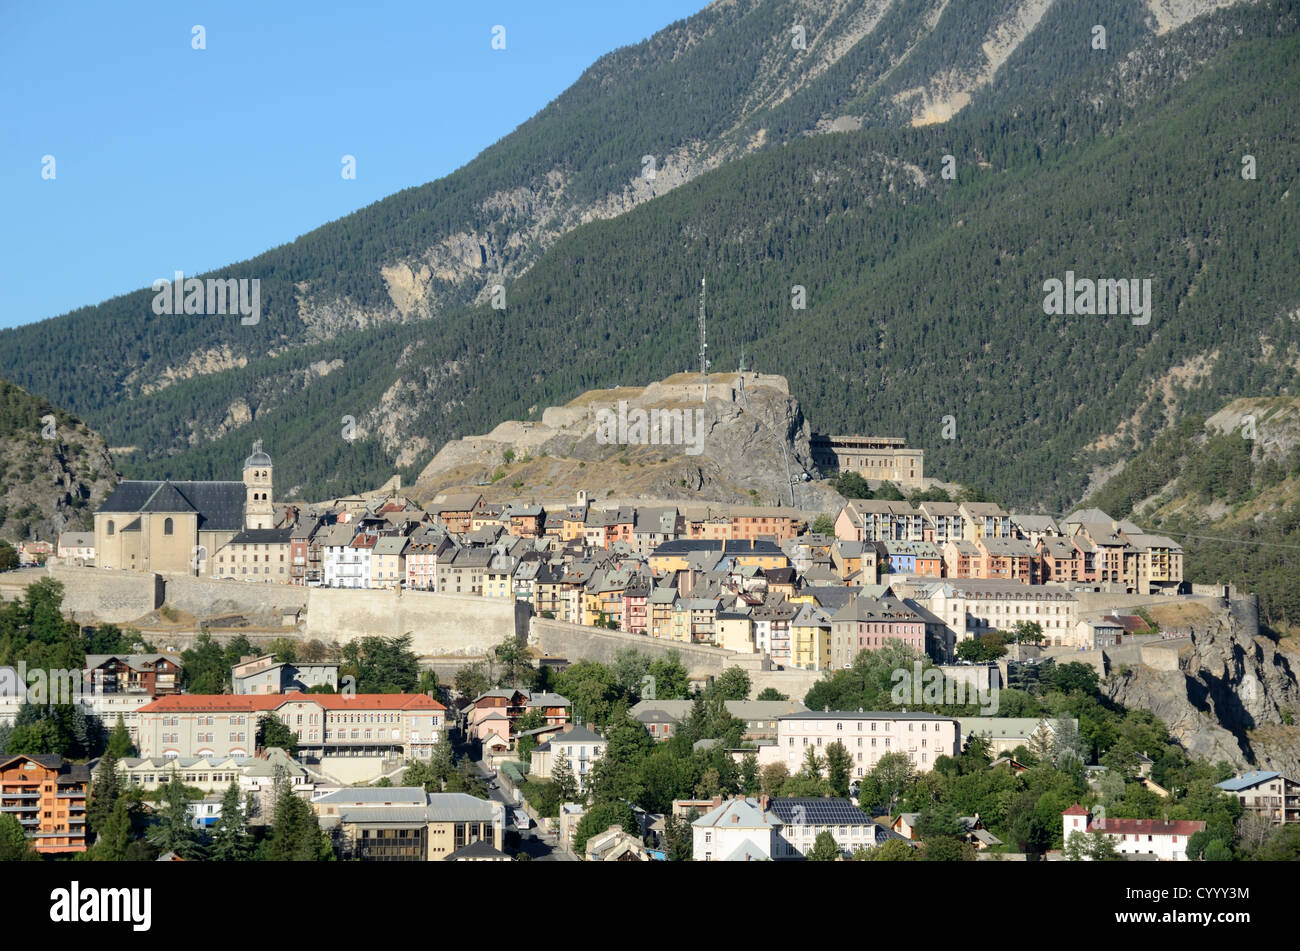 View over Town Vauban Fortifications and Citadel of Briançon Hautes-Alpes France - Stock Image